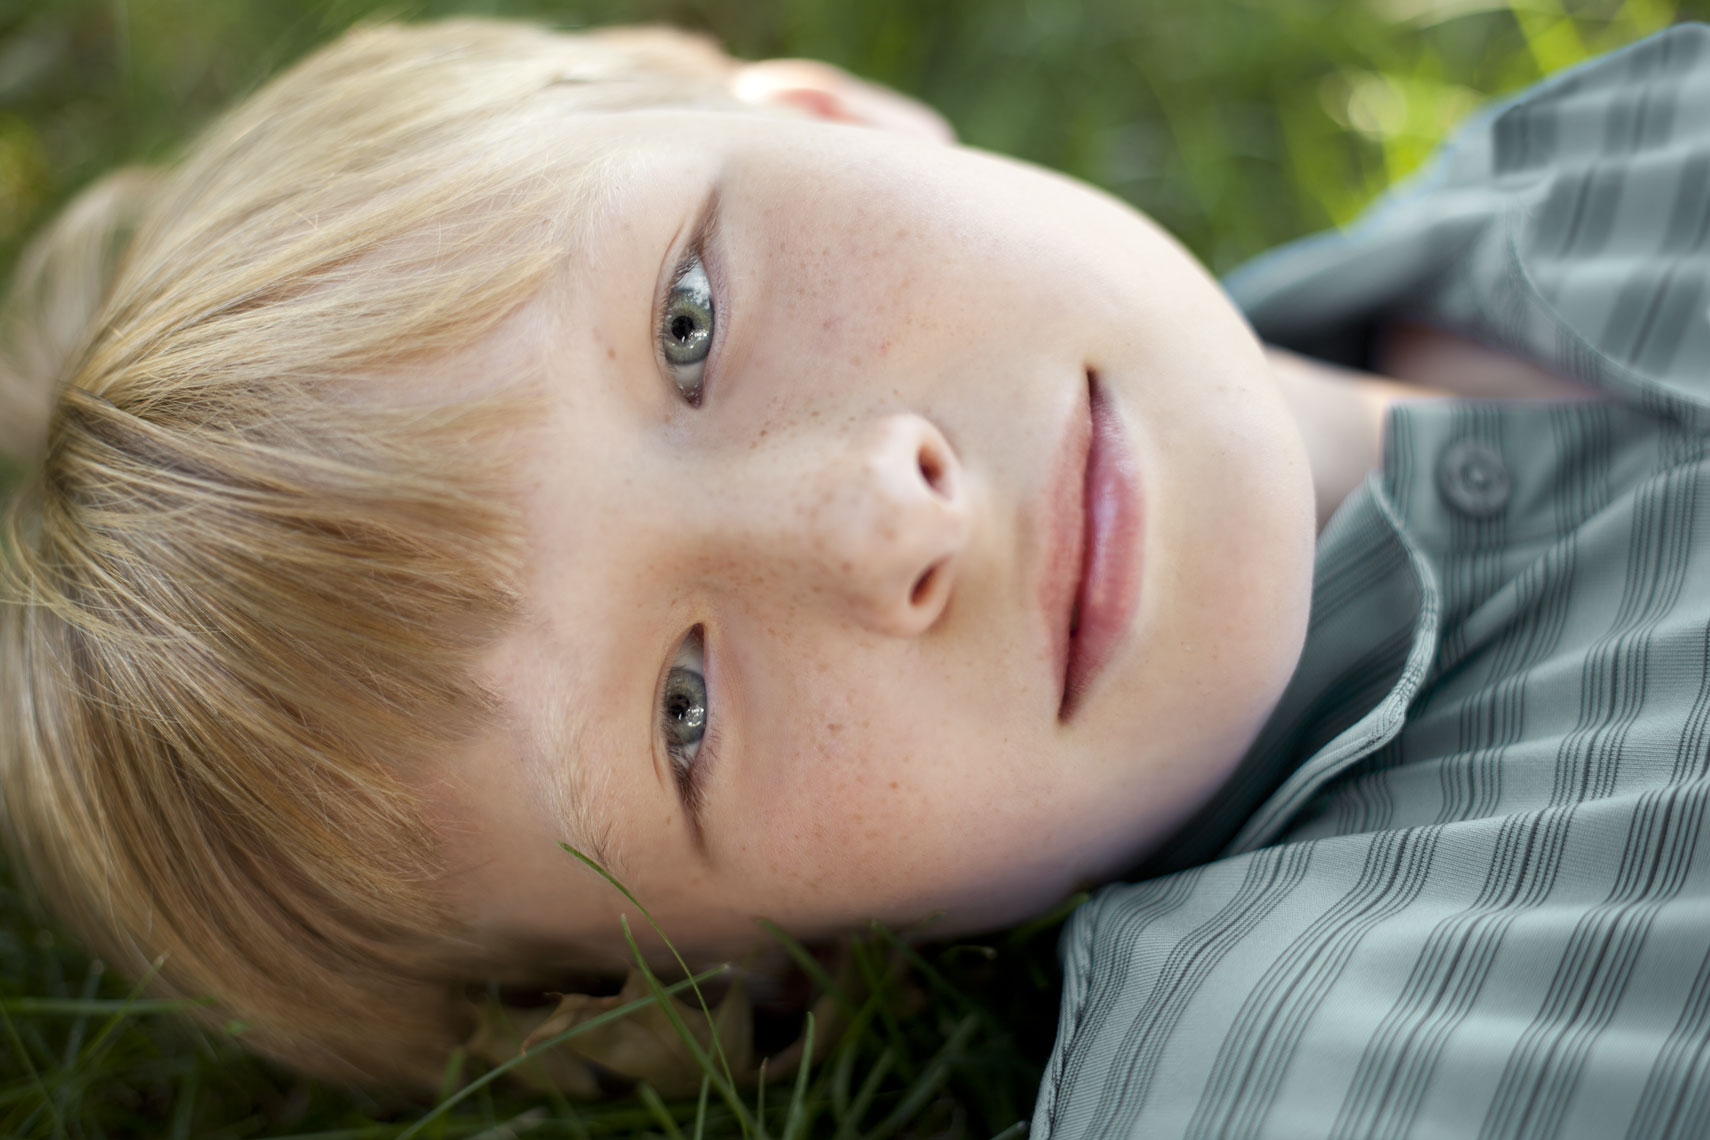 Environmental portrait of a young boy outside